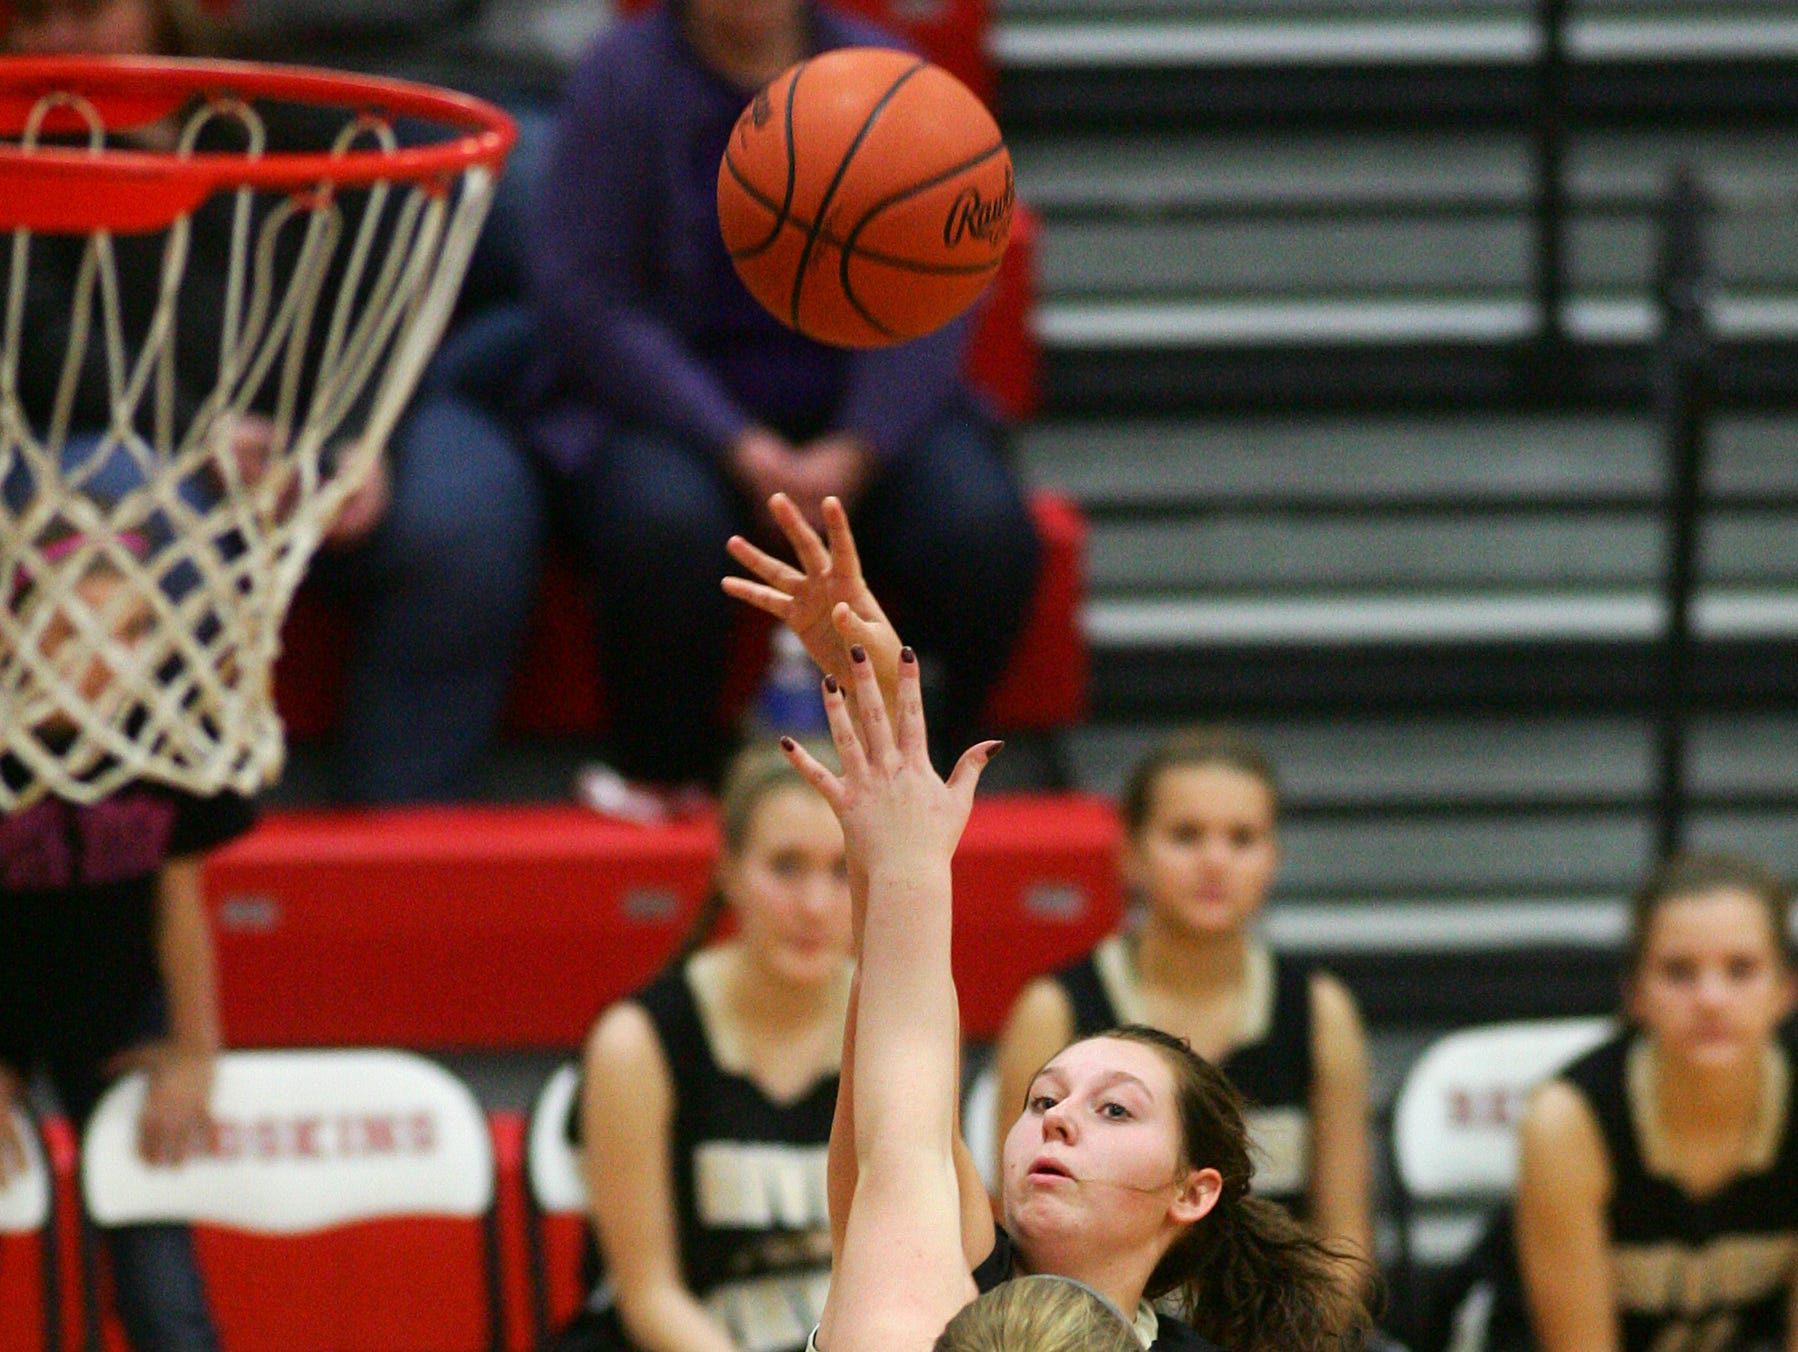 Coshocton sophomore Abby Zimomra puts pressure on River View freshman Cydne Whiteus as she takes a shot Wednesday during the Black Bears' 41-28 victory in Coshocton.